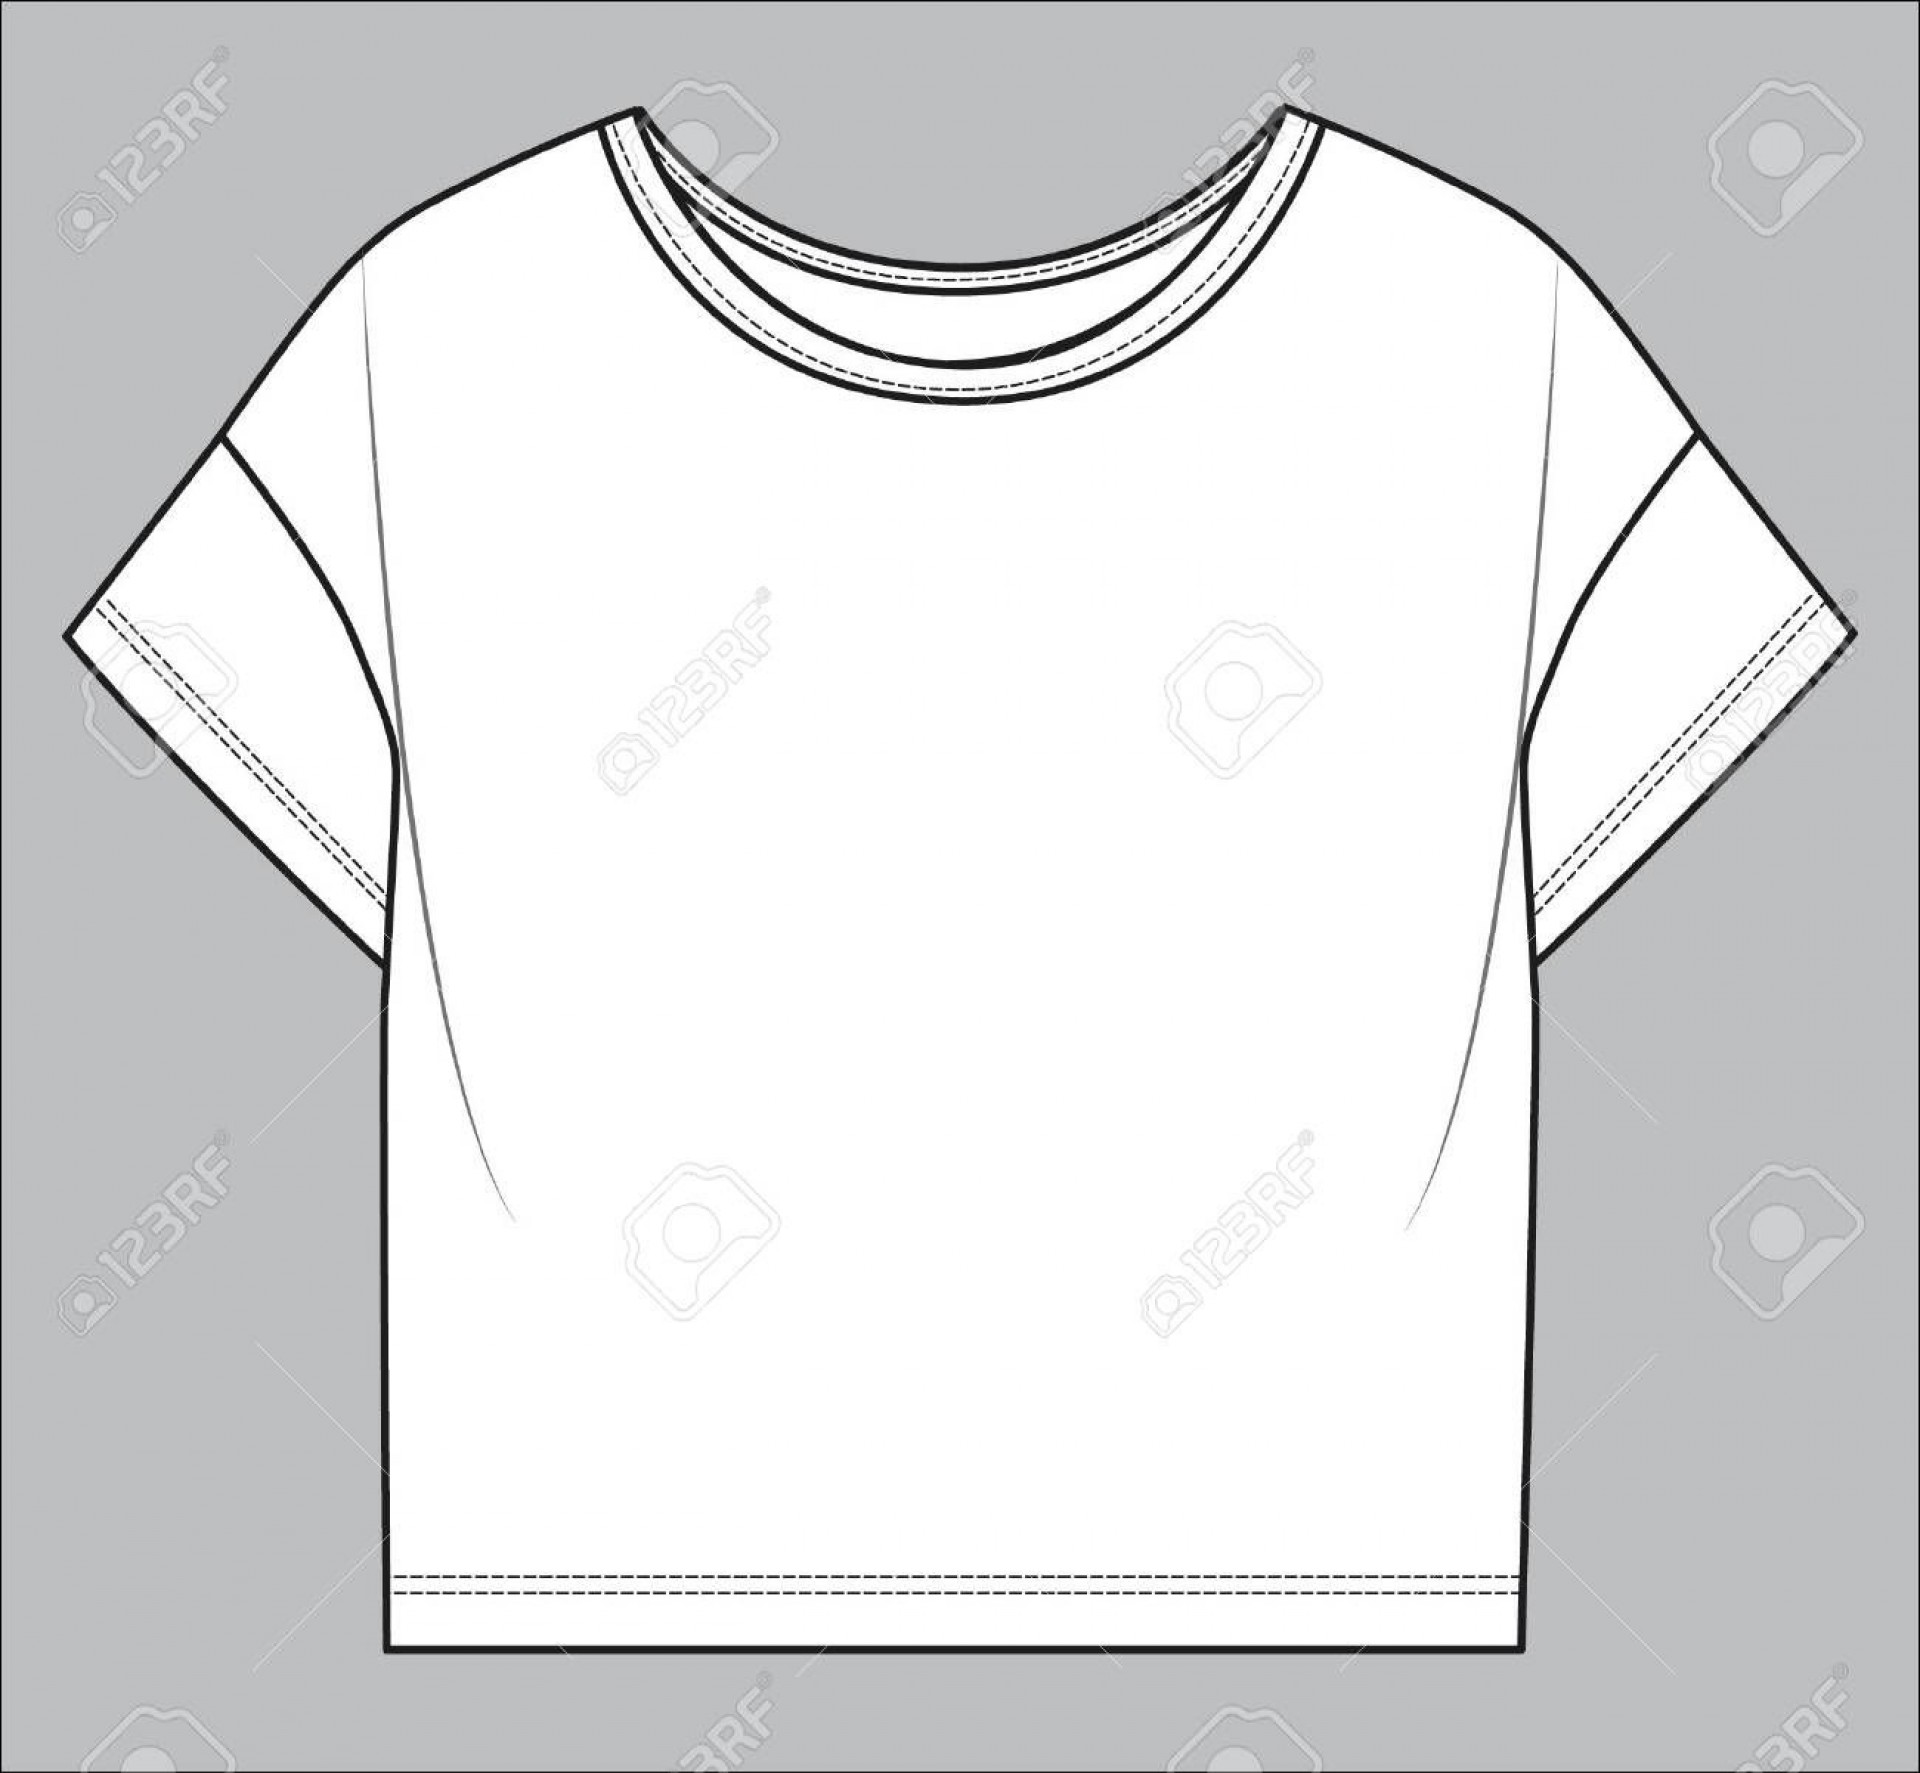 003 Amazing T Shirt Design Template Free  Psd Download1920